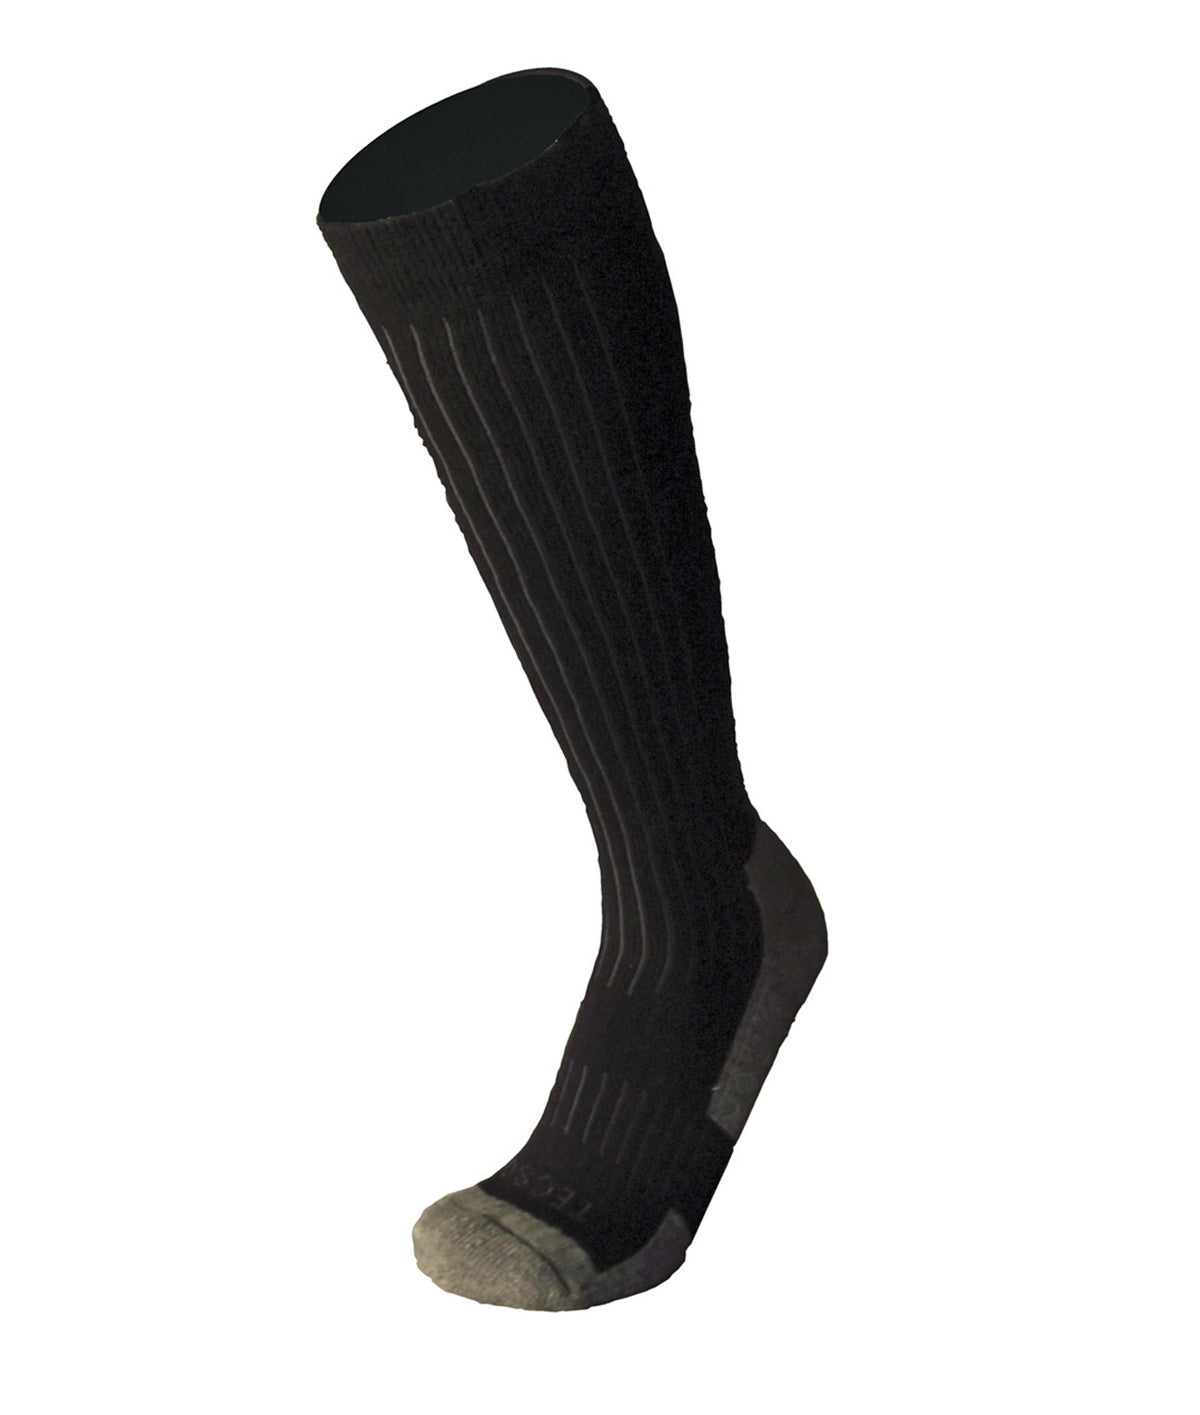 WOOL - TEFLON SOCKS